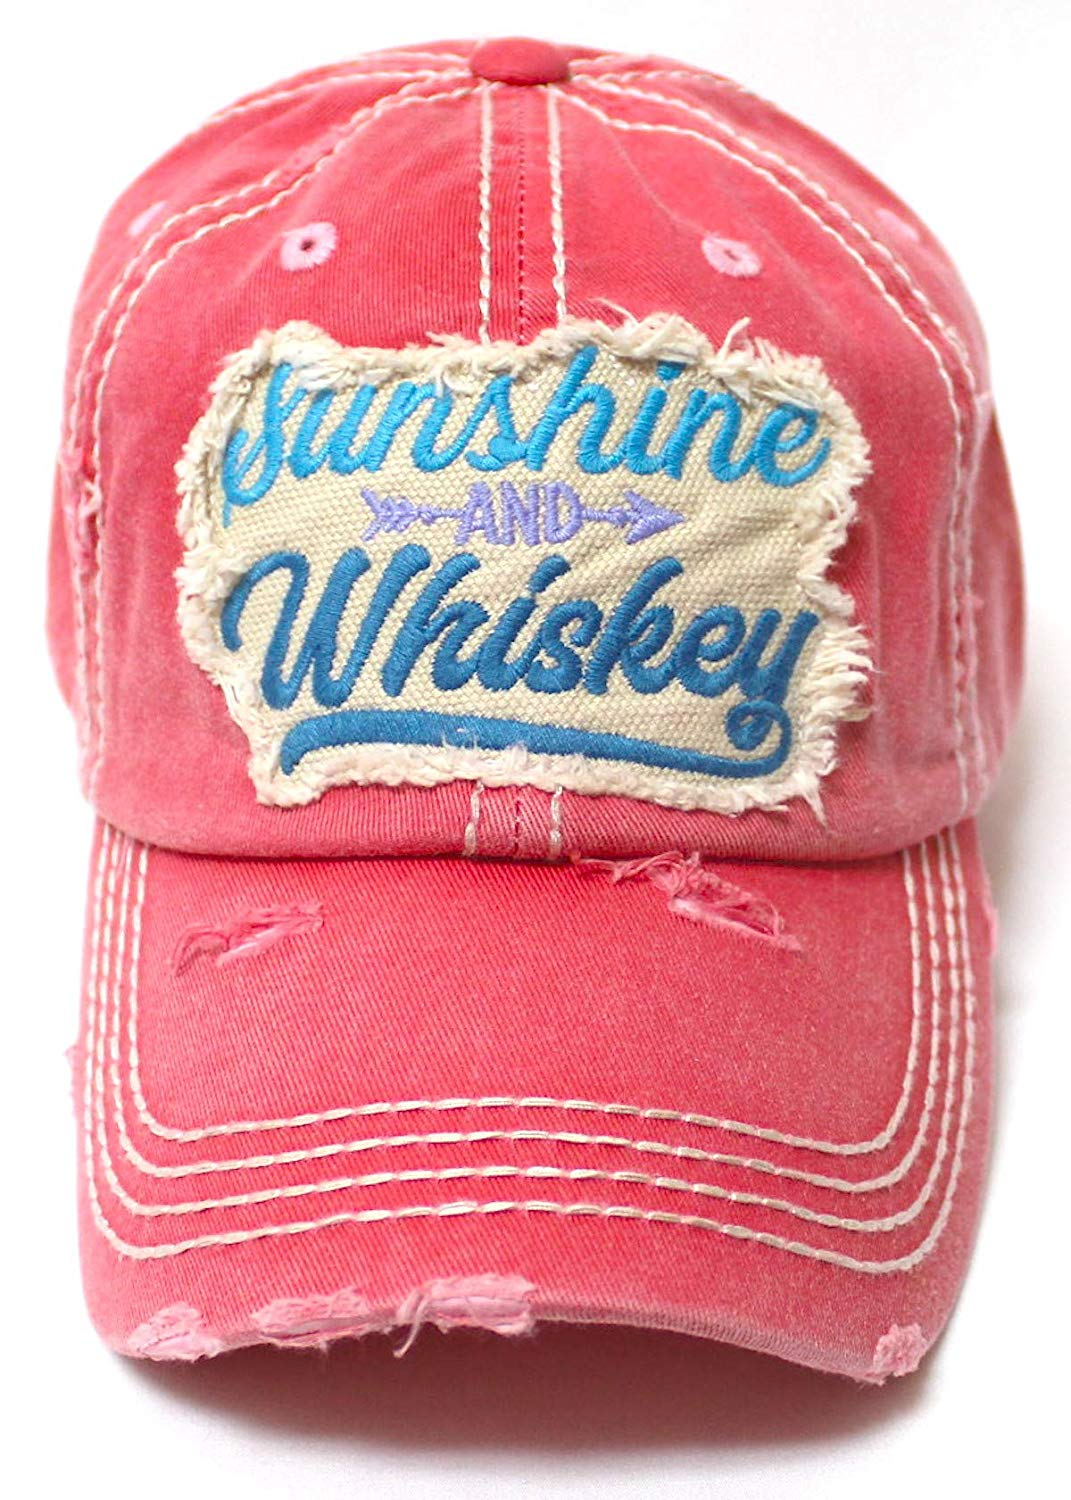 Women's Ballcap Sunshine and Whiskey Tribal Arrow Patch Embroidery Hat, Rose Pink - Caps 'N Vintage